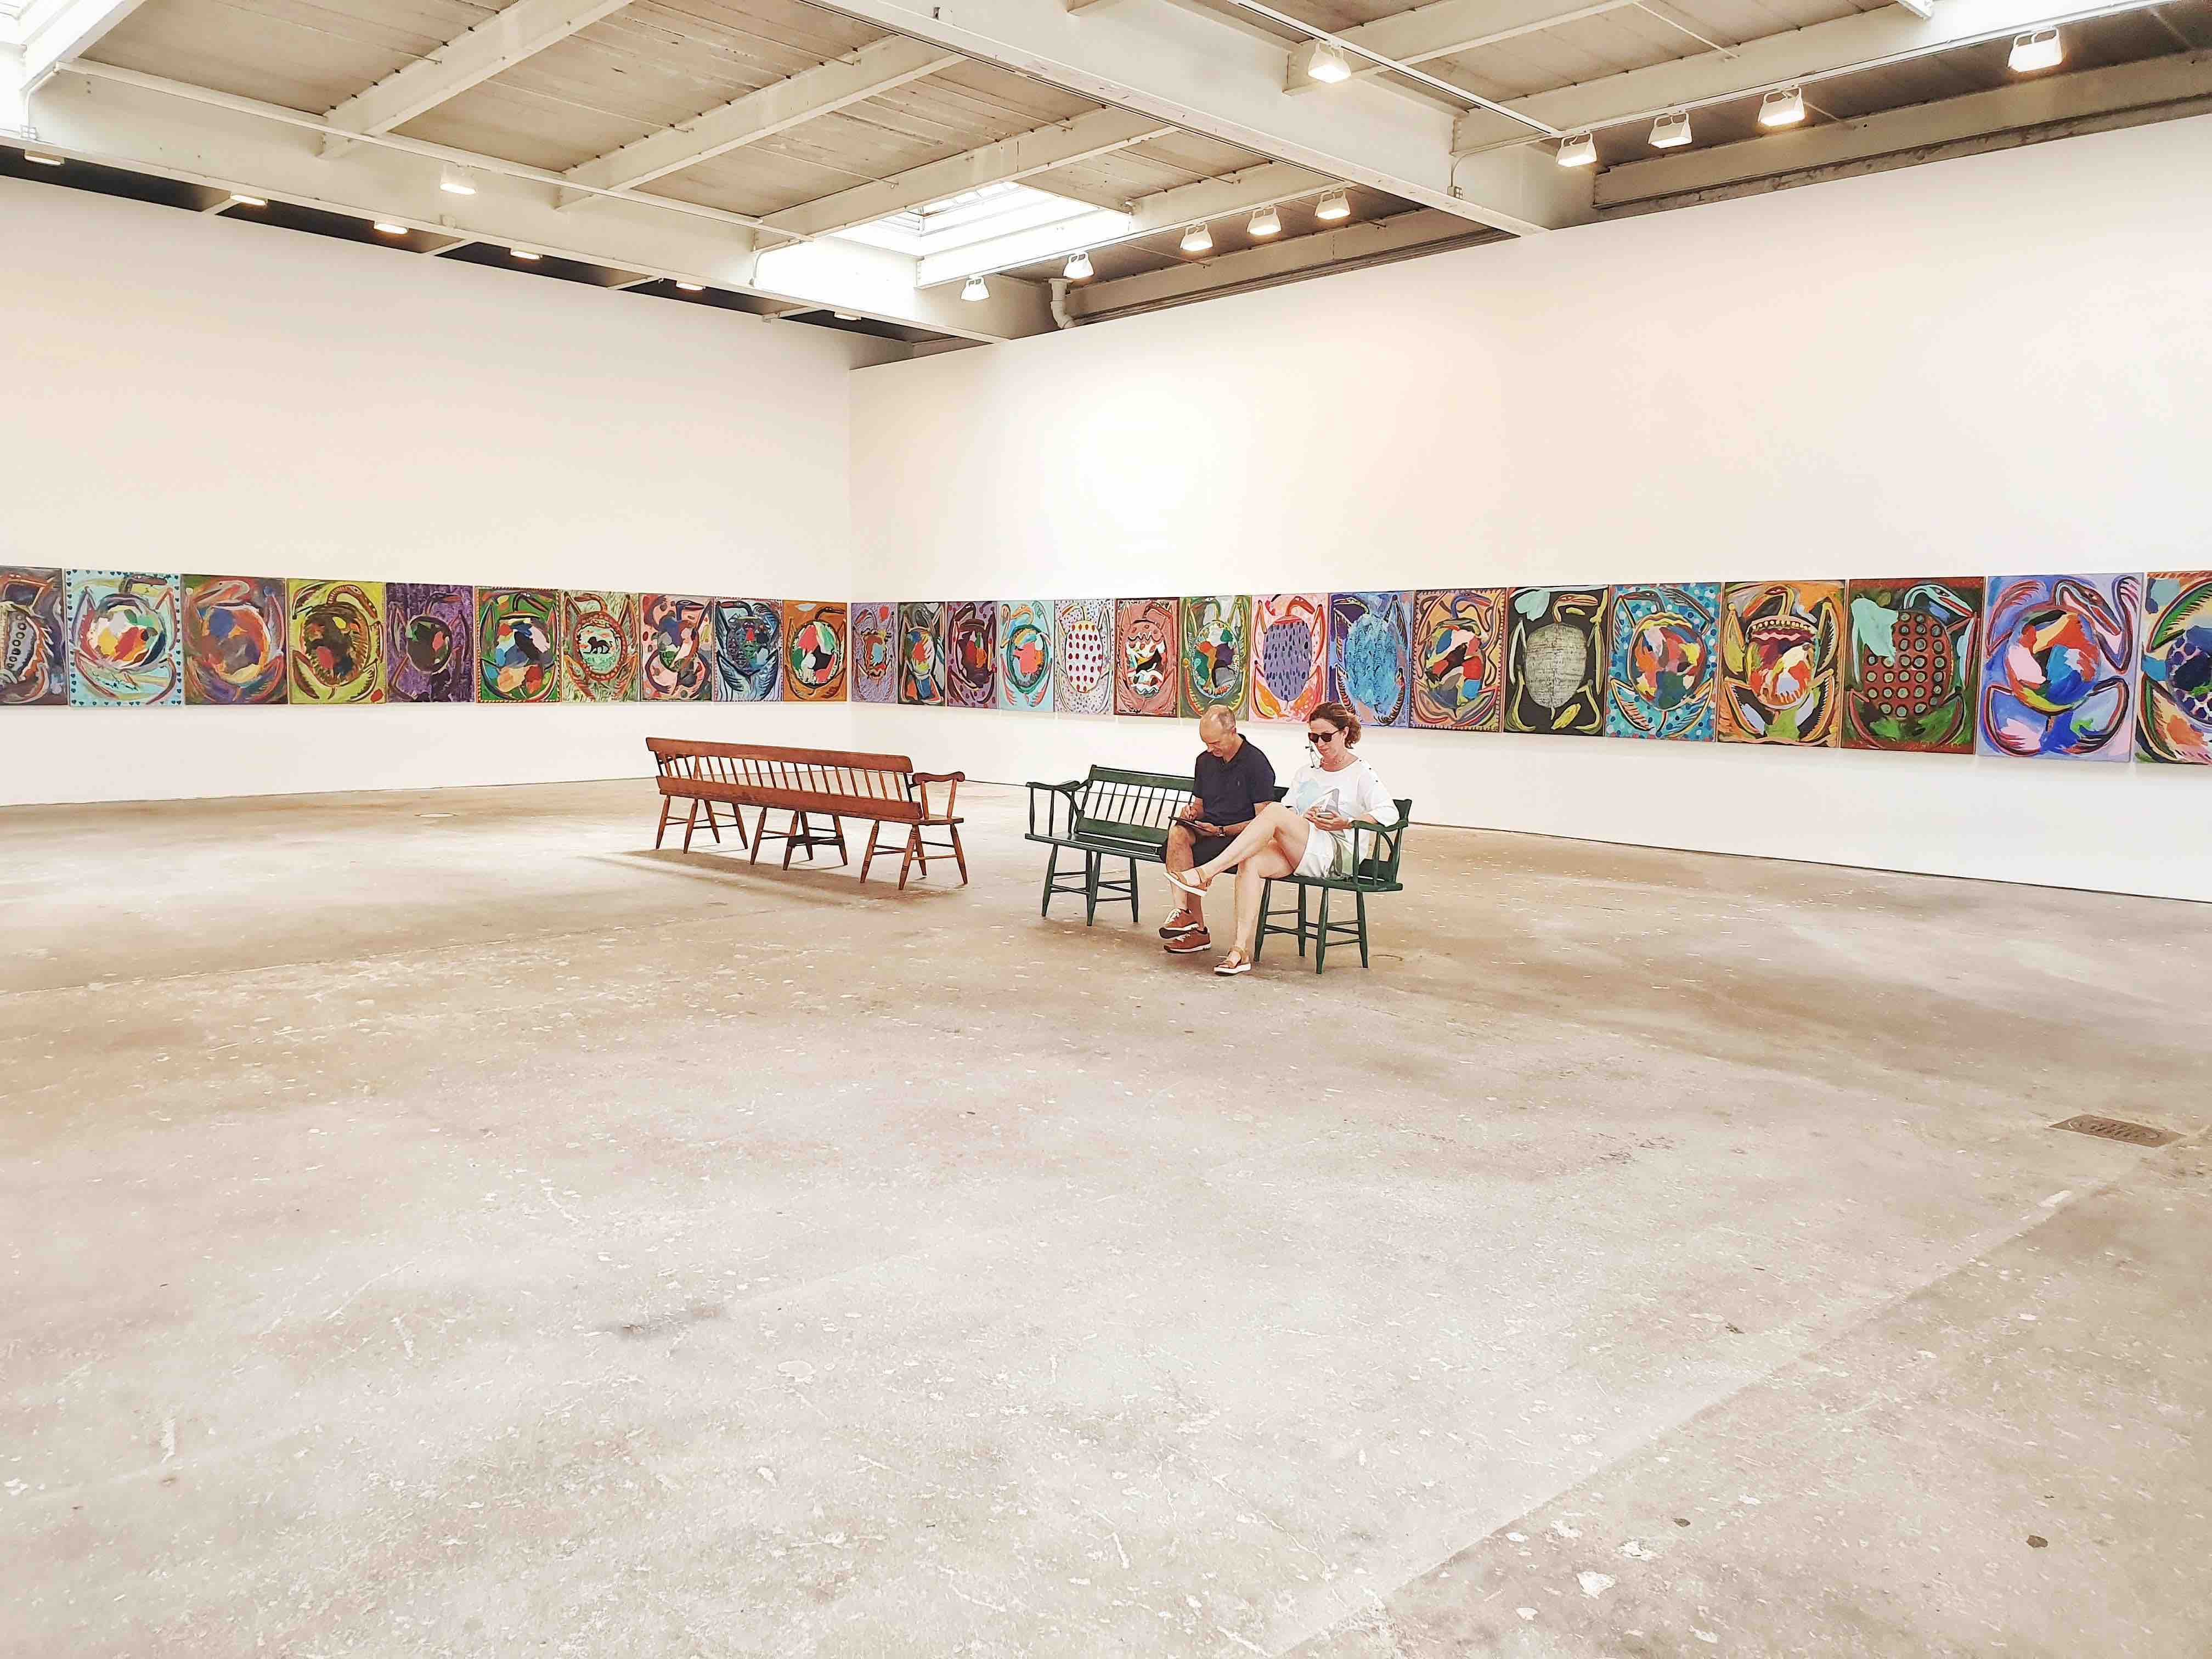 David Zwirner Gallery New York